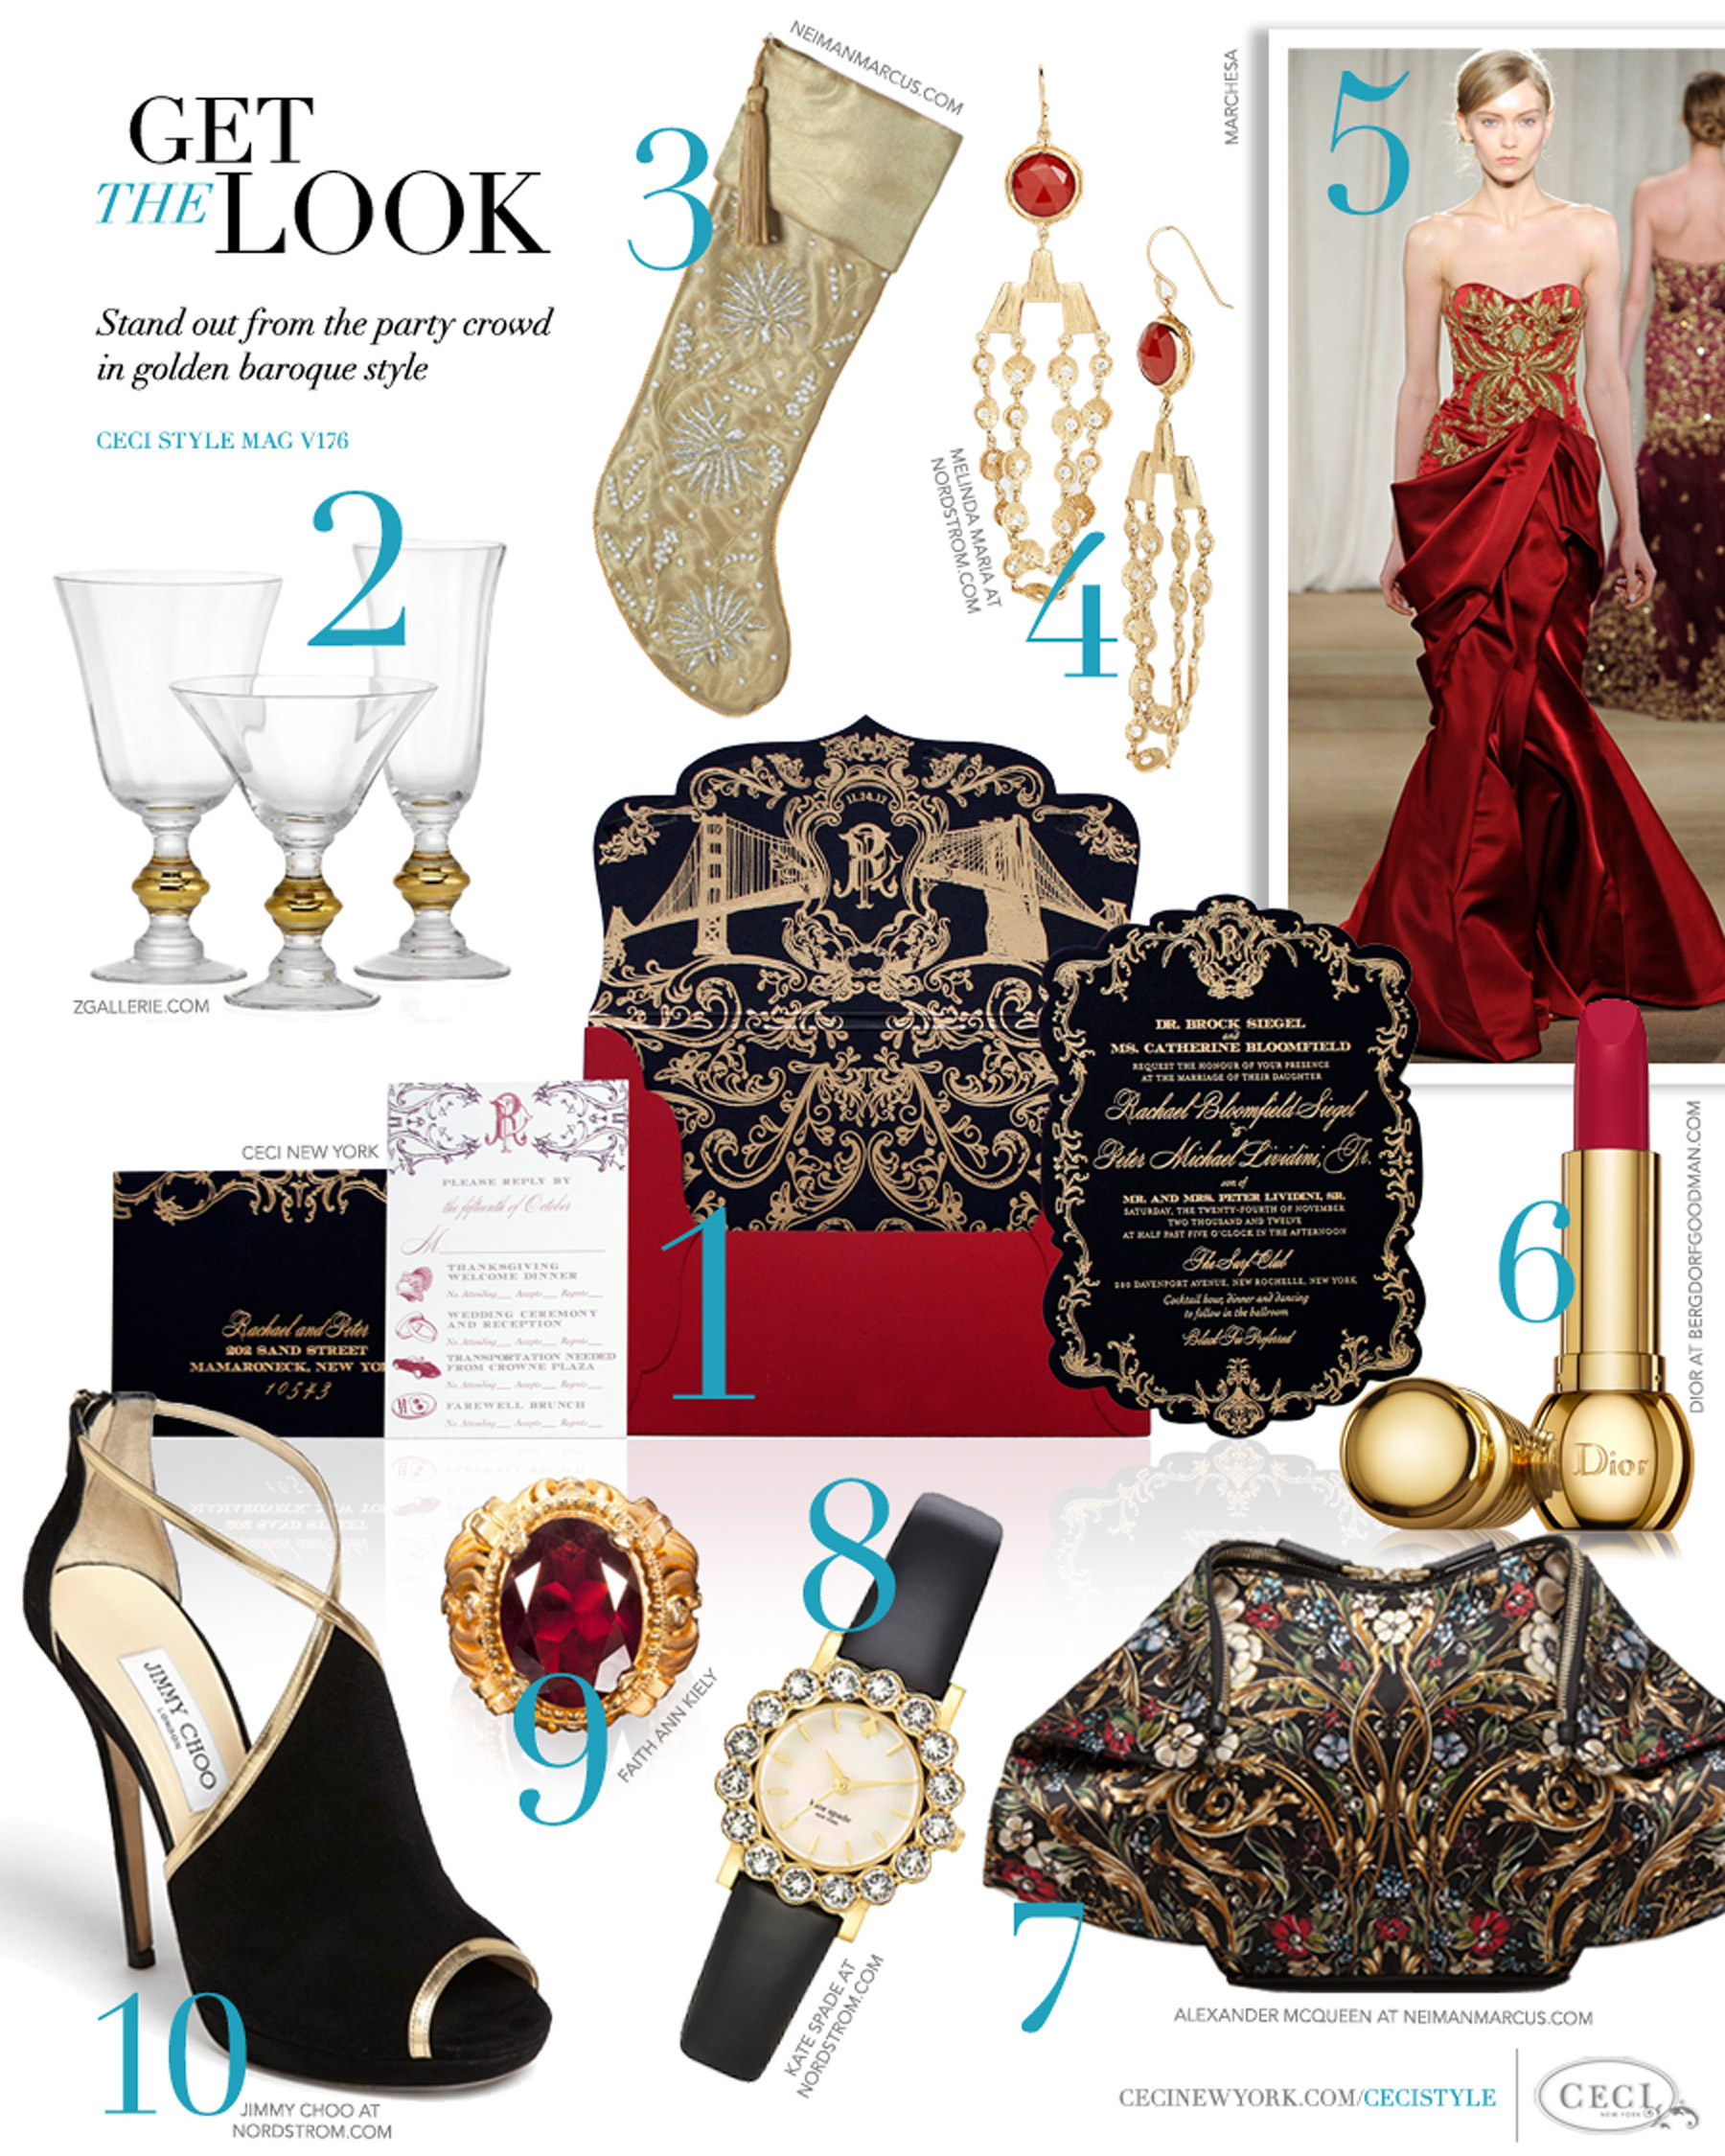 CeciStyle Magazine v176: Get The Look - A Dazzling Holiday - Stand out from the party crowd in golden baroque style - Luxury wedding Invitations by Ceci New York - ceci new york, invitation, zgallerie.com, home goods, neimanmarcus.com, melinda maria, jewelry, marchesa, fashion, dior, beauty, alexander mcqueen, handbags, kate spade, faith ann kiely, jimmy choo, shoes